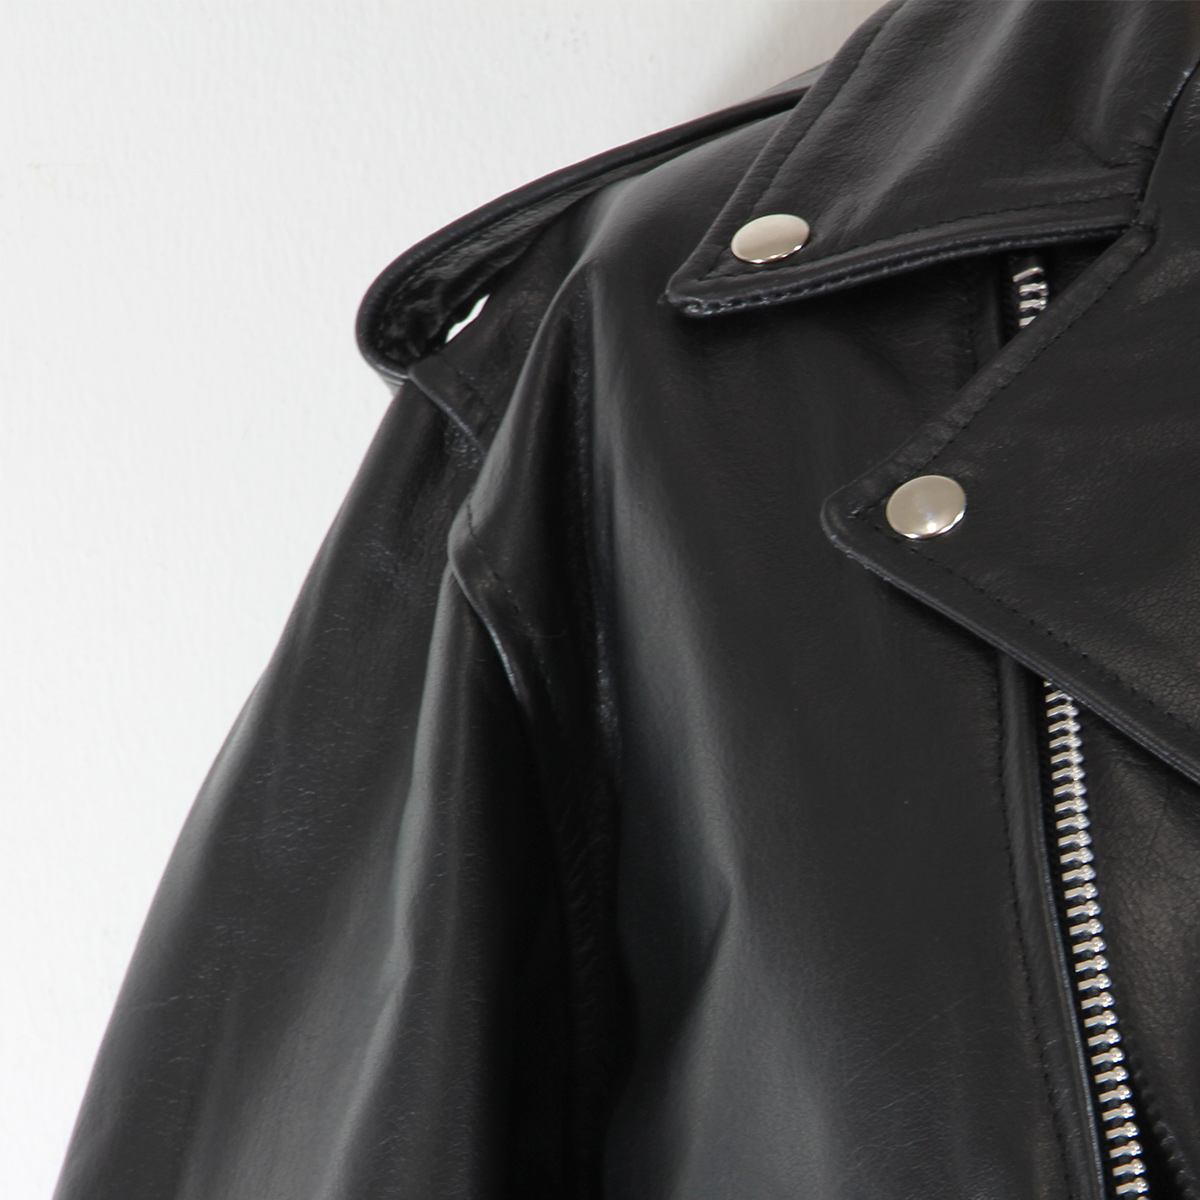 Black-TOP-GRADE-Leather-Motorcycle-Biker-Jacket-3